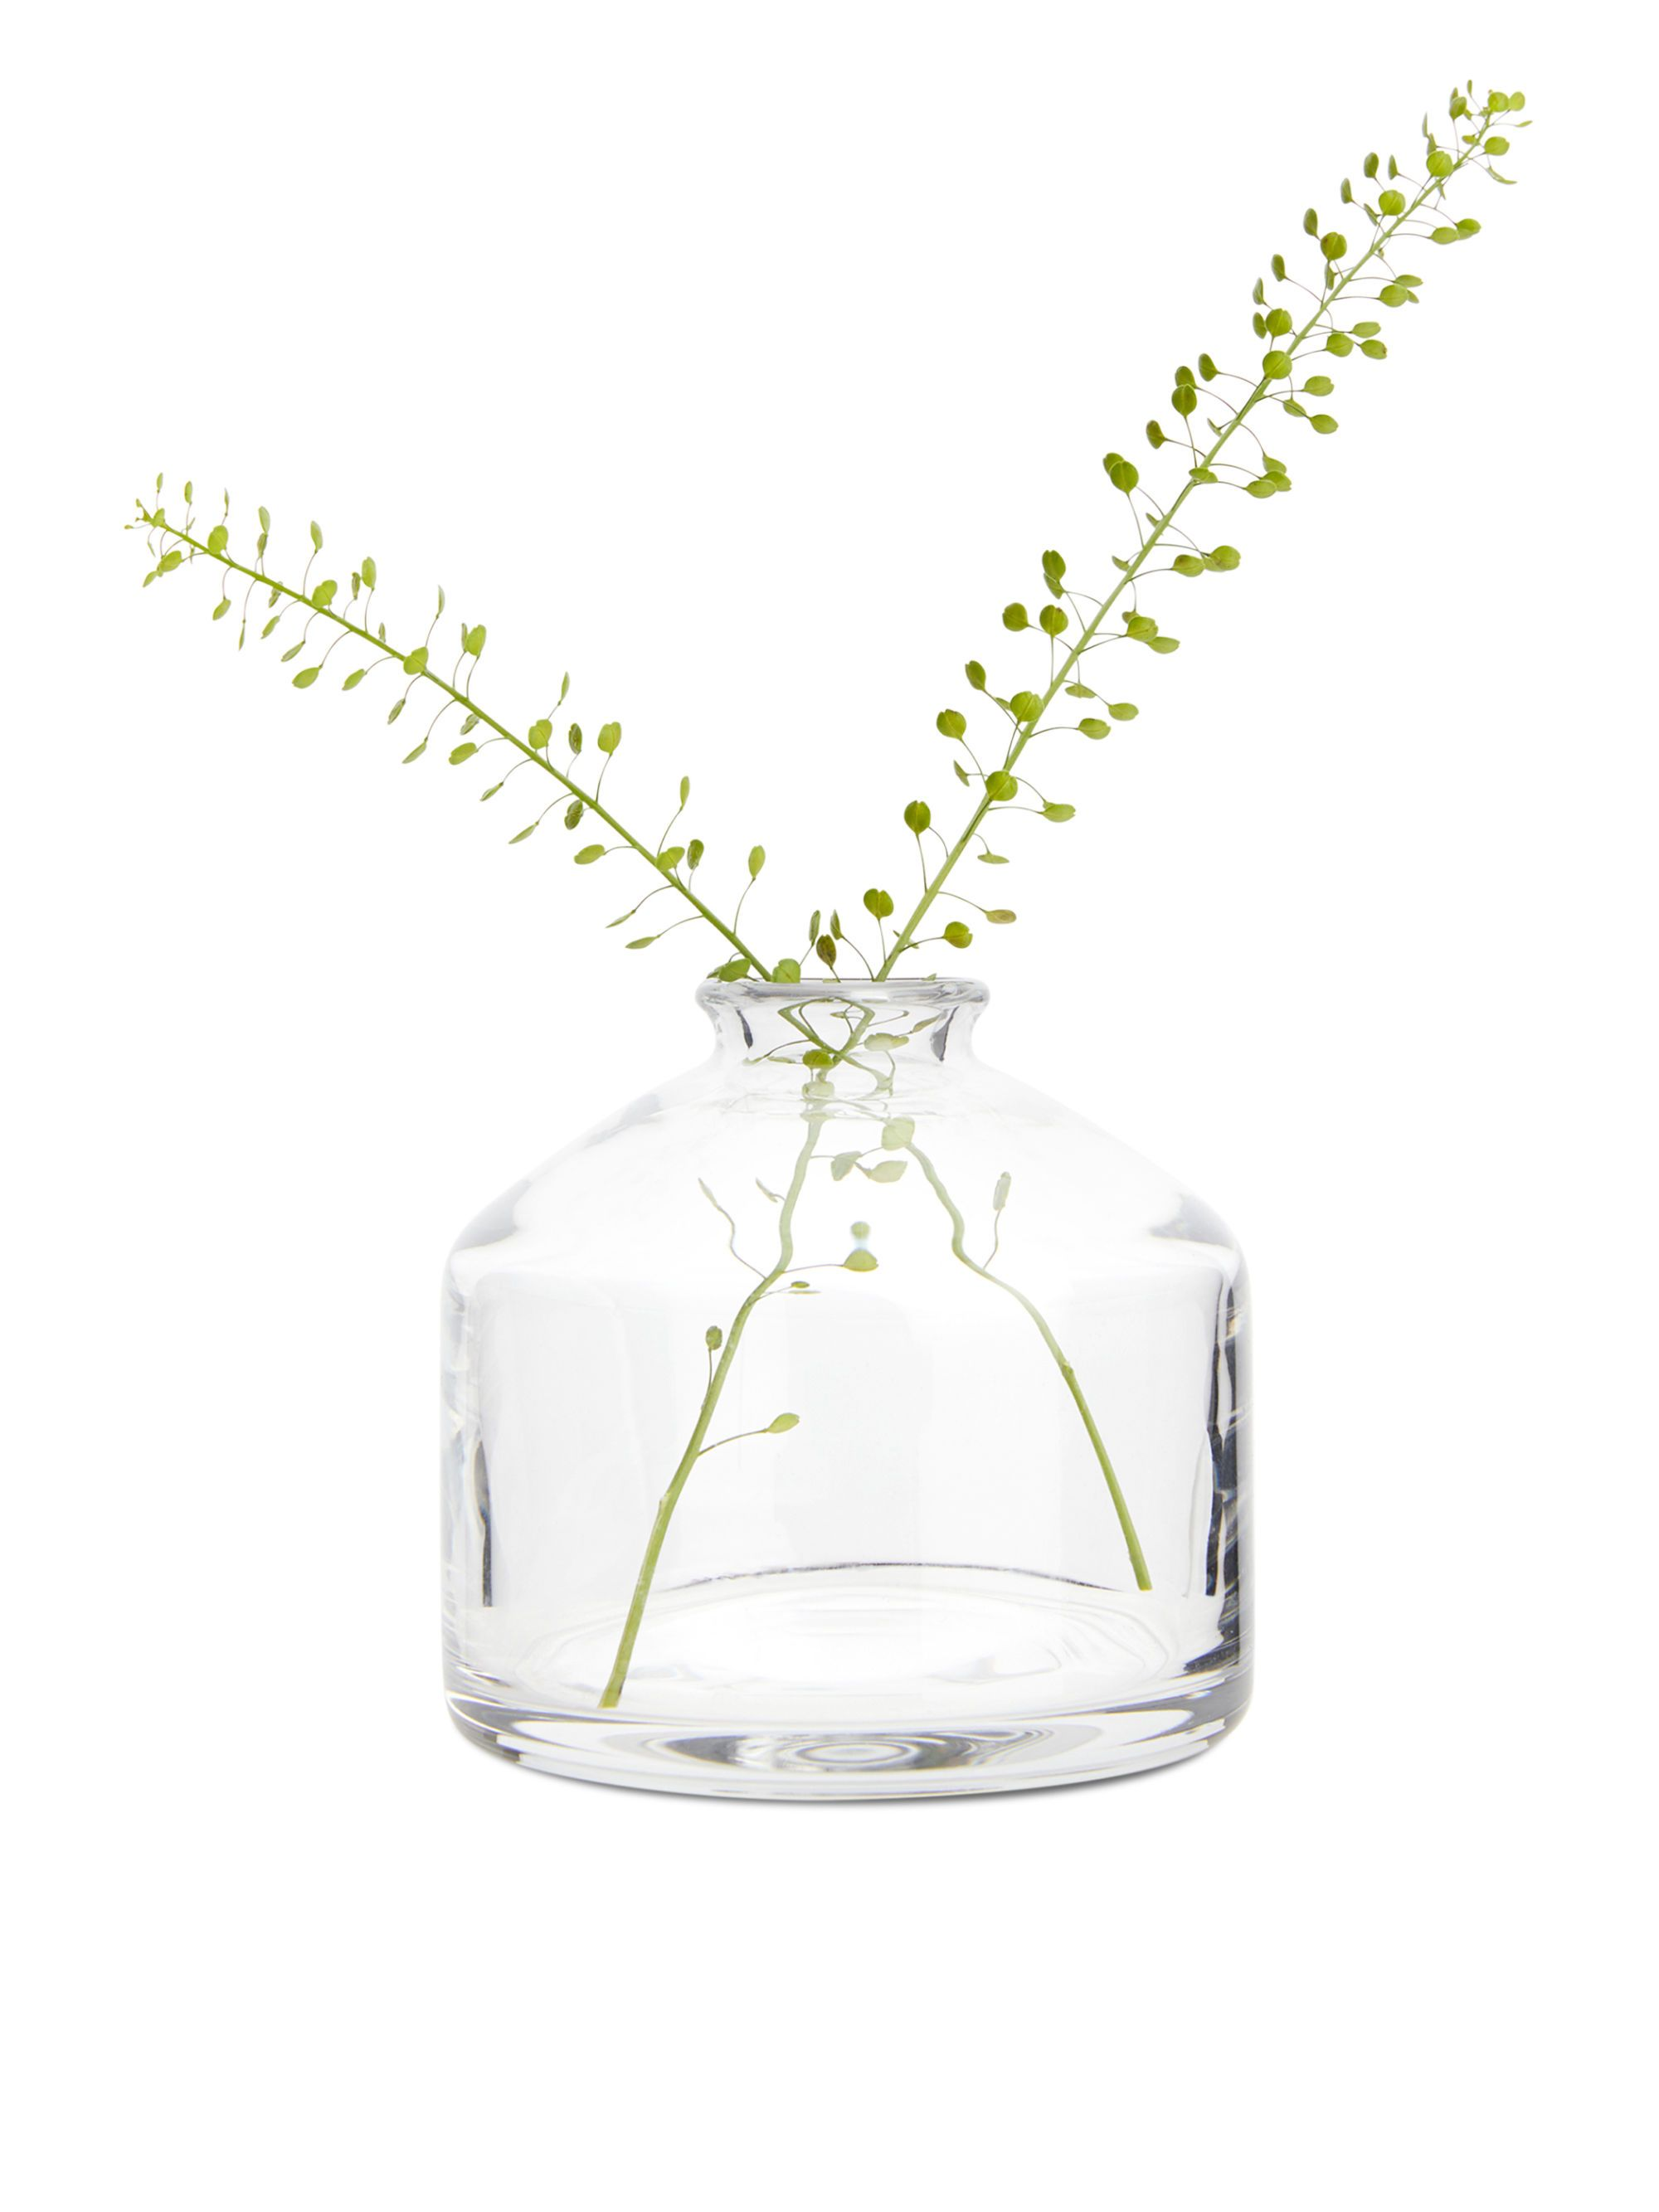 571010 724 Extra Small Glass Vase A Delicate Mouth Blown Vase With A Small Opening Perfect For That Odd Flower Or Twig Out M Small Glass Vases Glass Decor